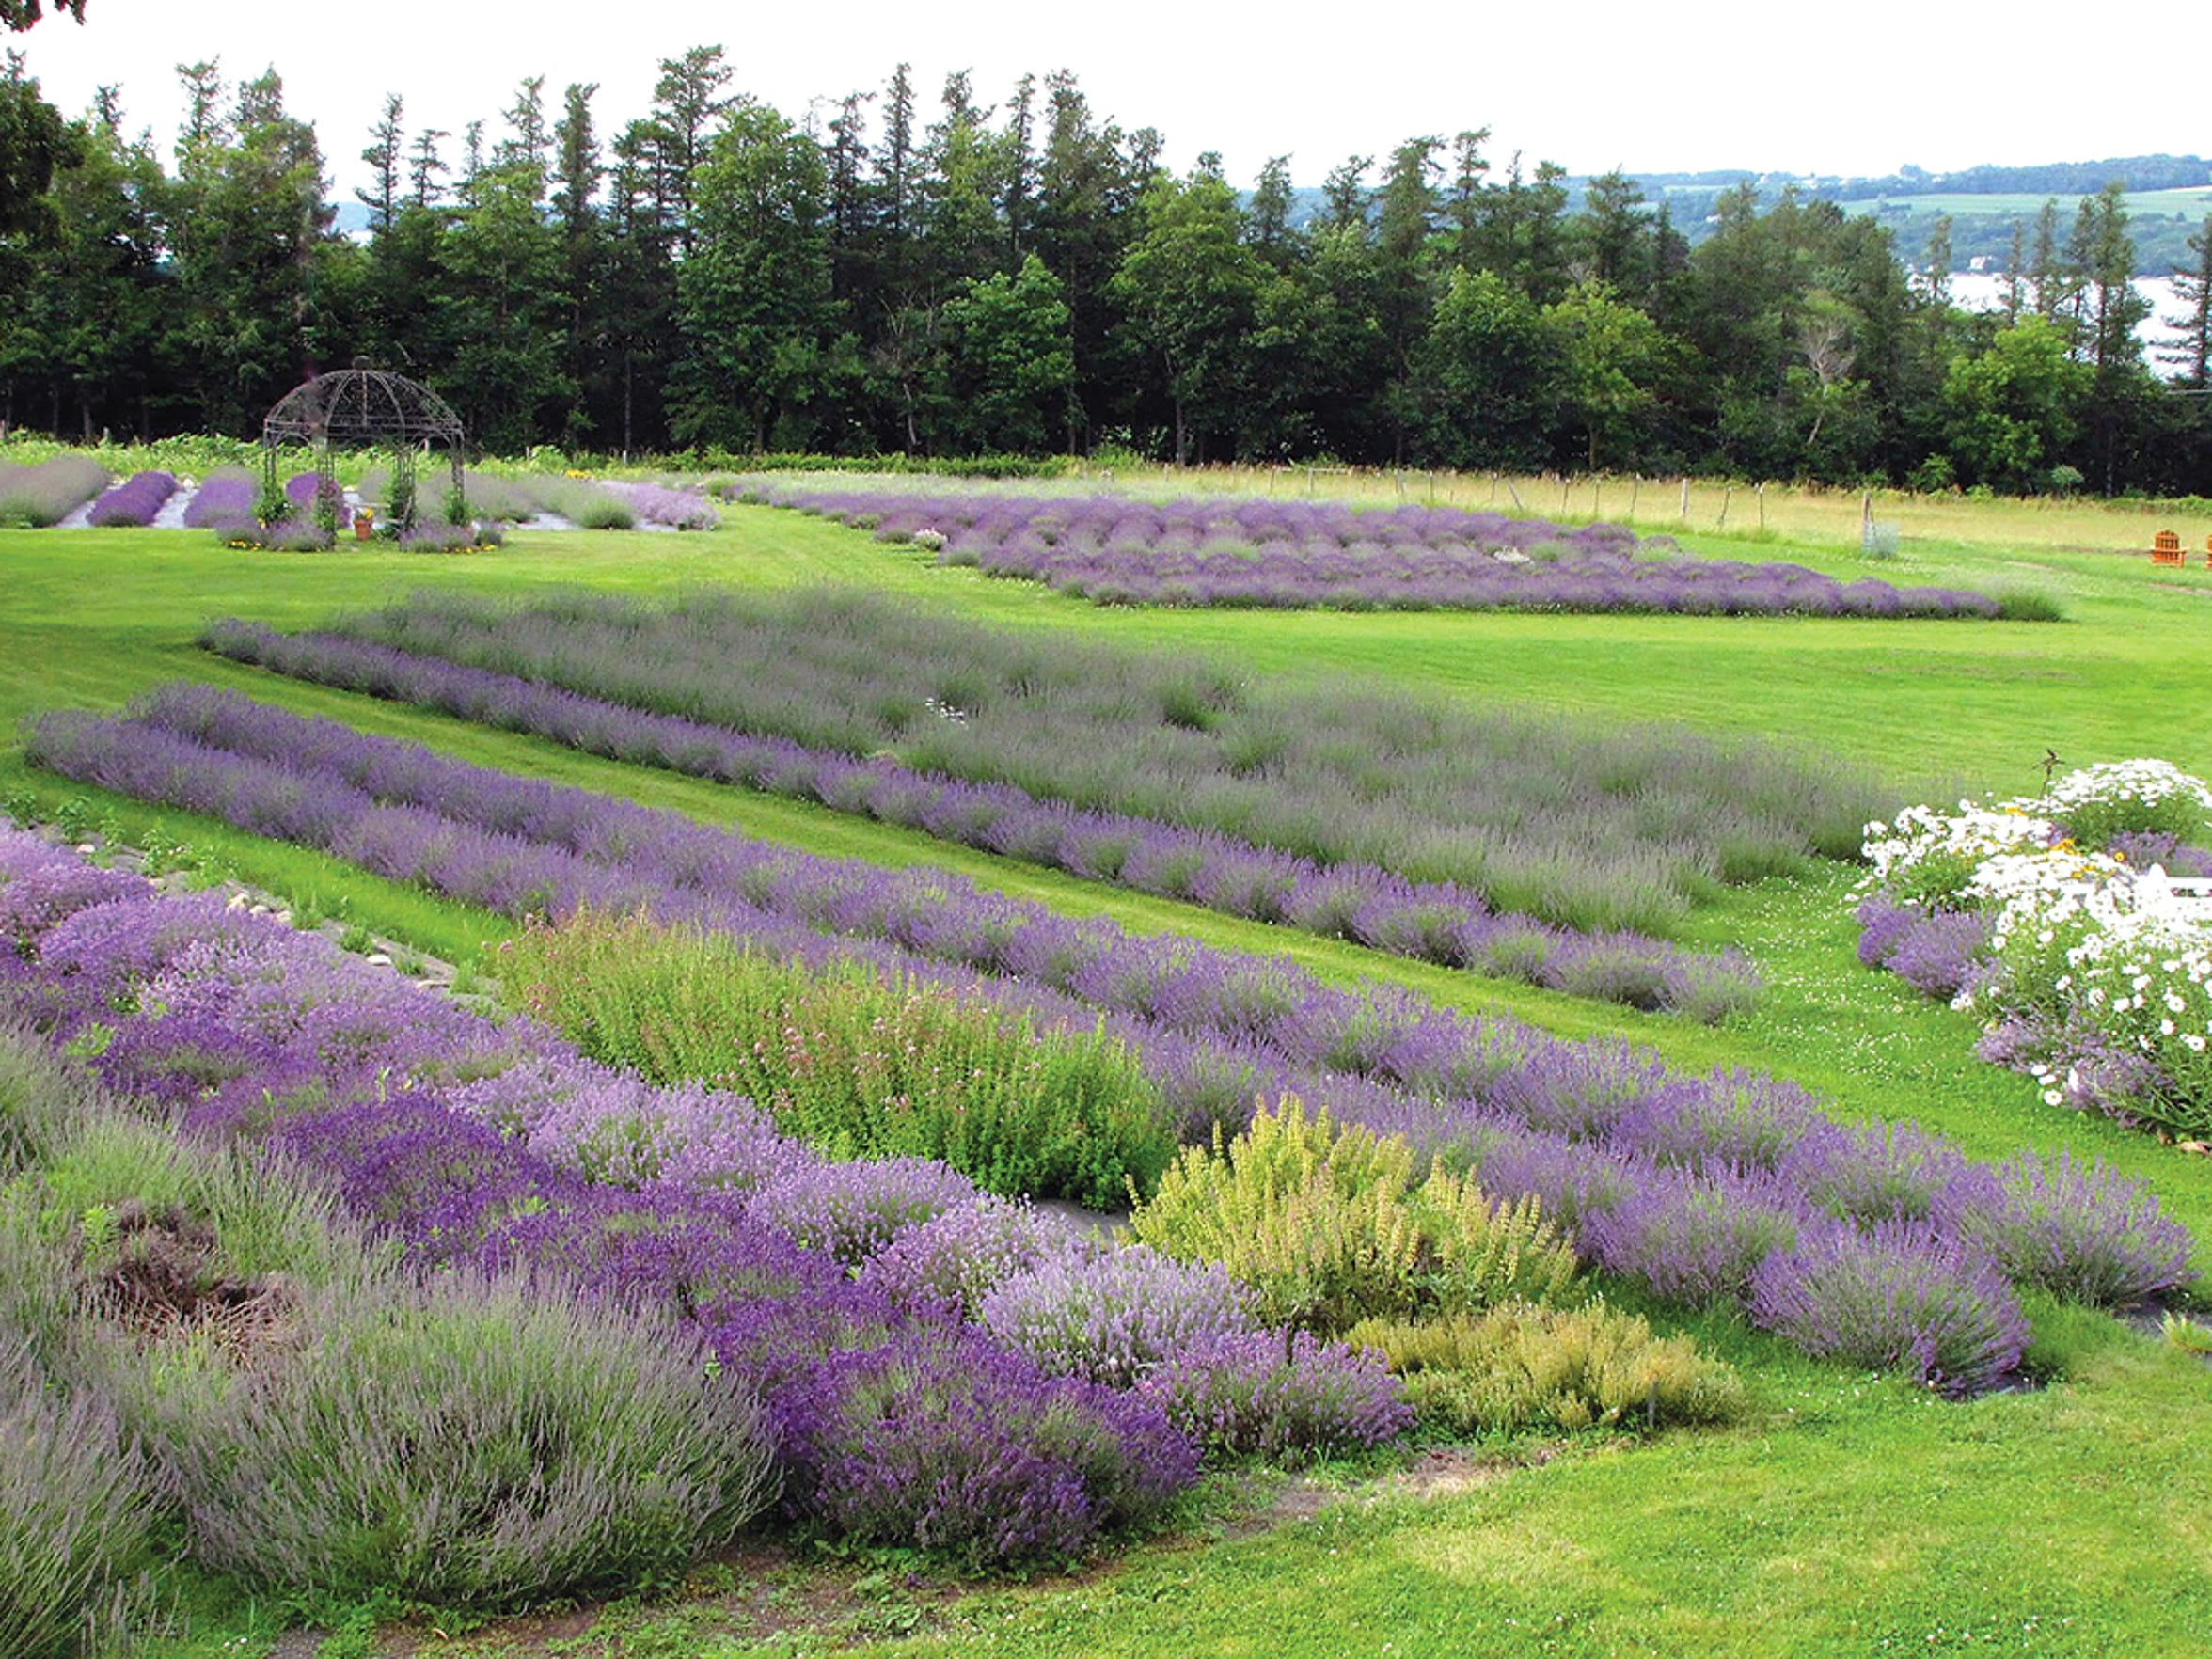 Lockwood Lavender Farm, home of the Finger Lakes Lavender